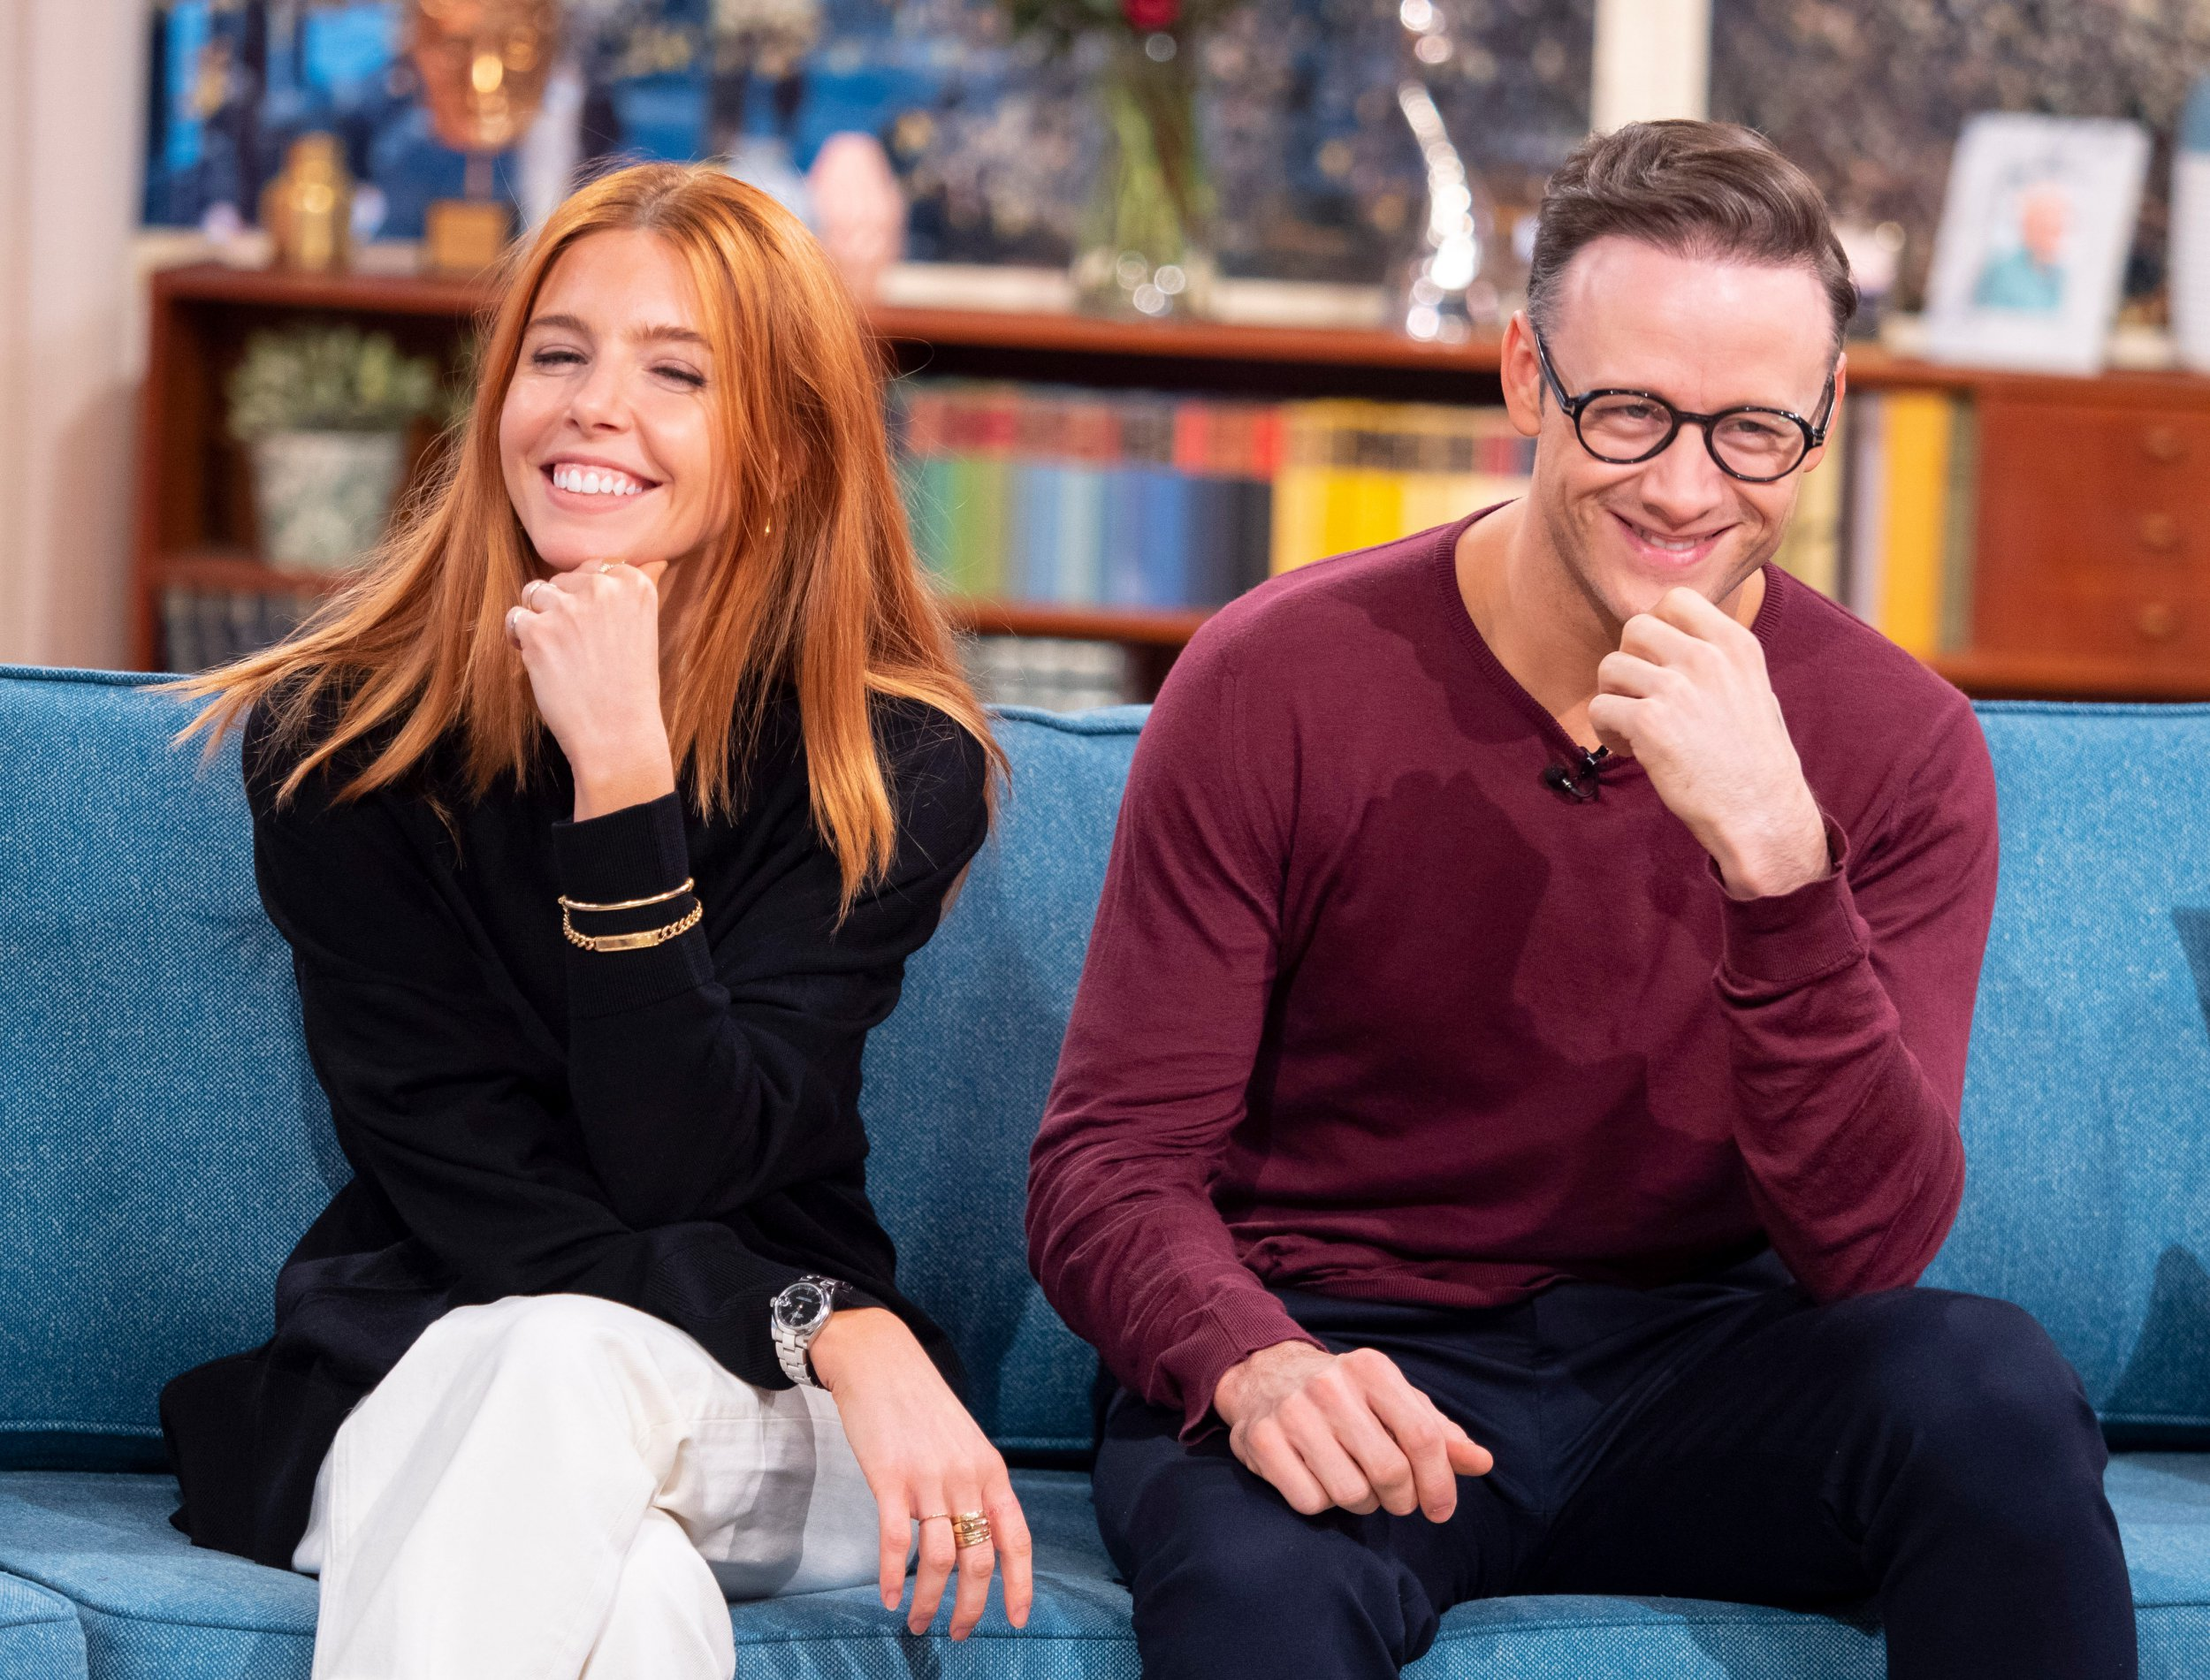 Kevin Clifton 'begged' to be Stacey Dooley's Strictly partner amid romance claims